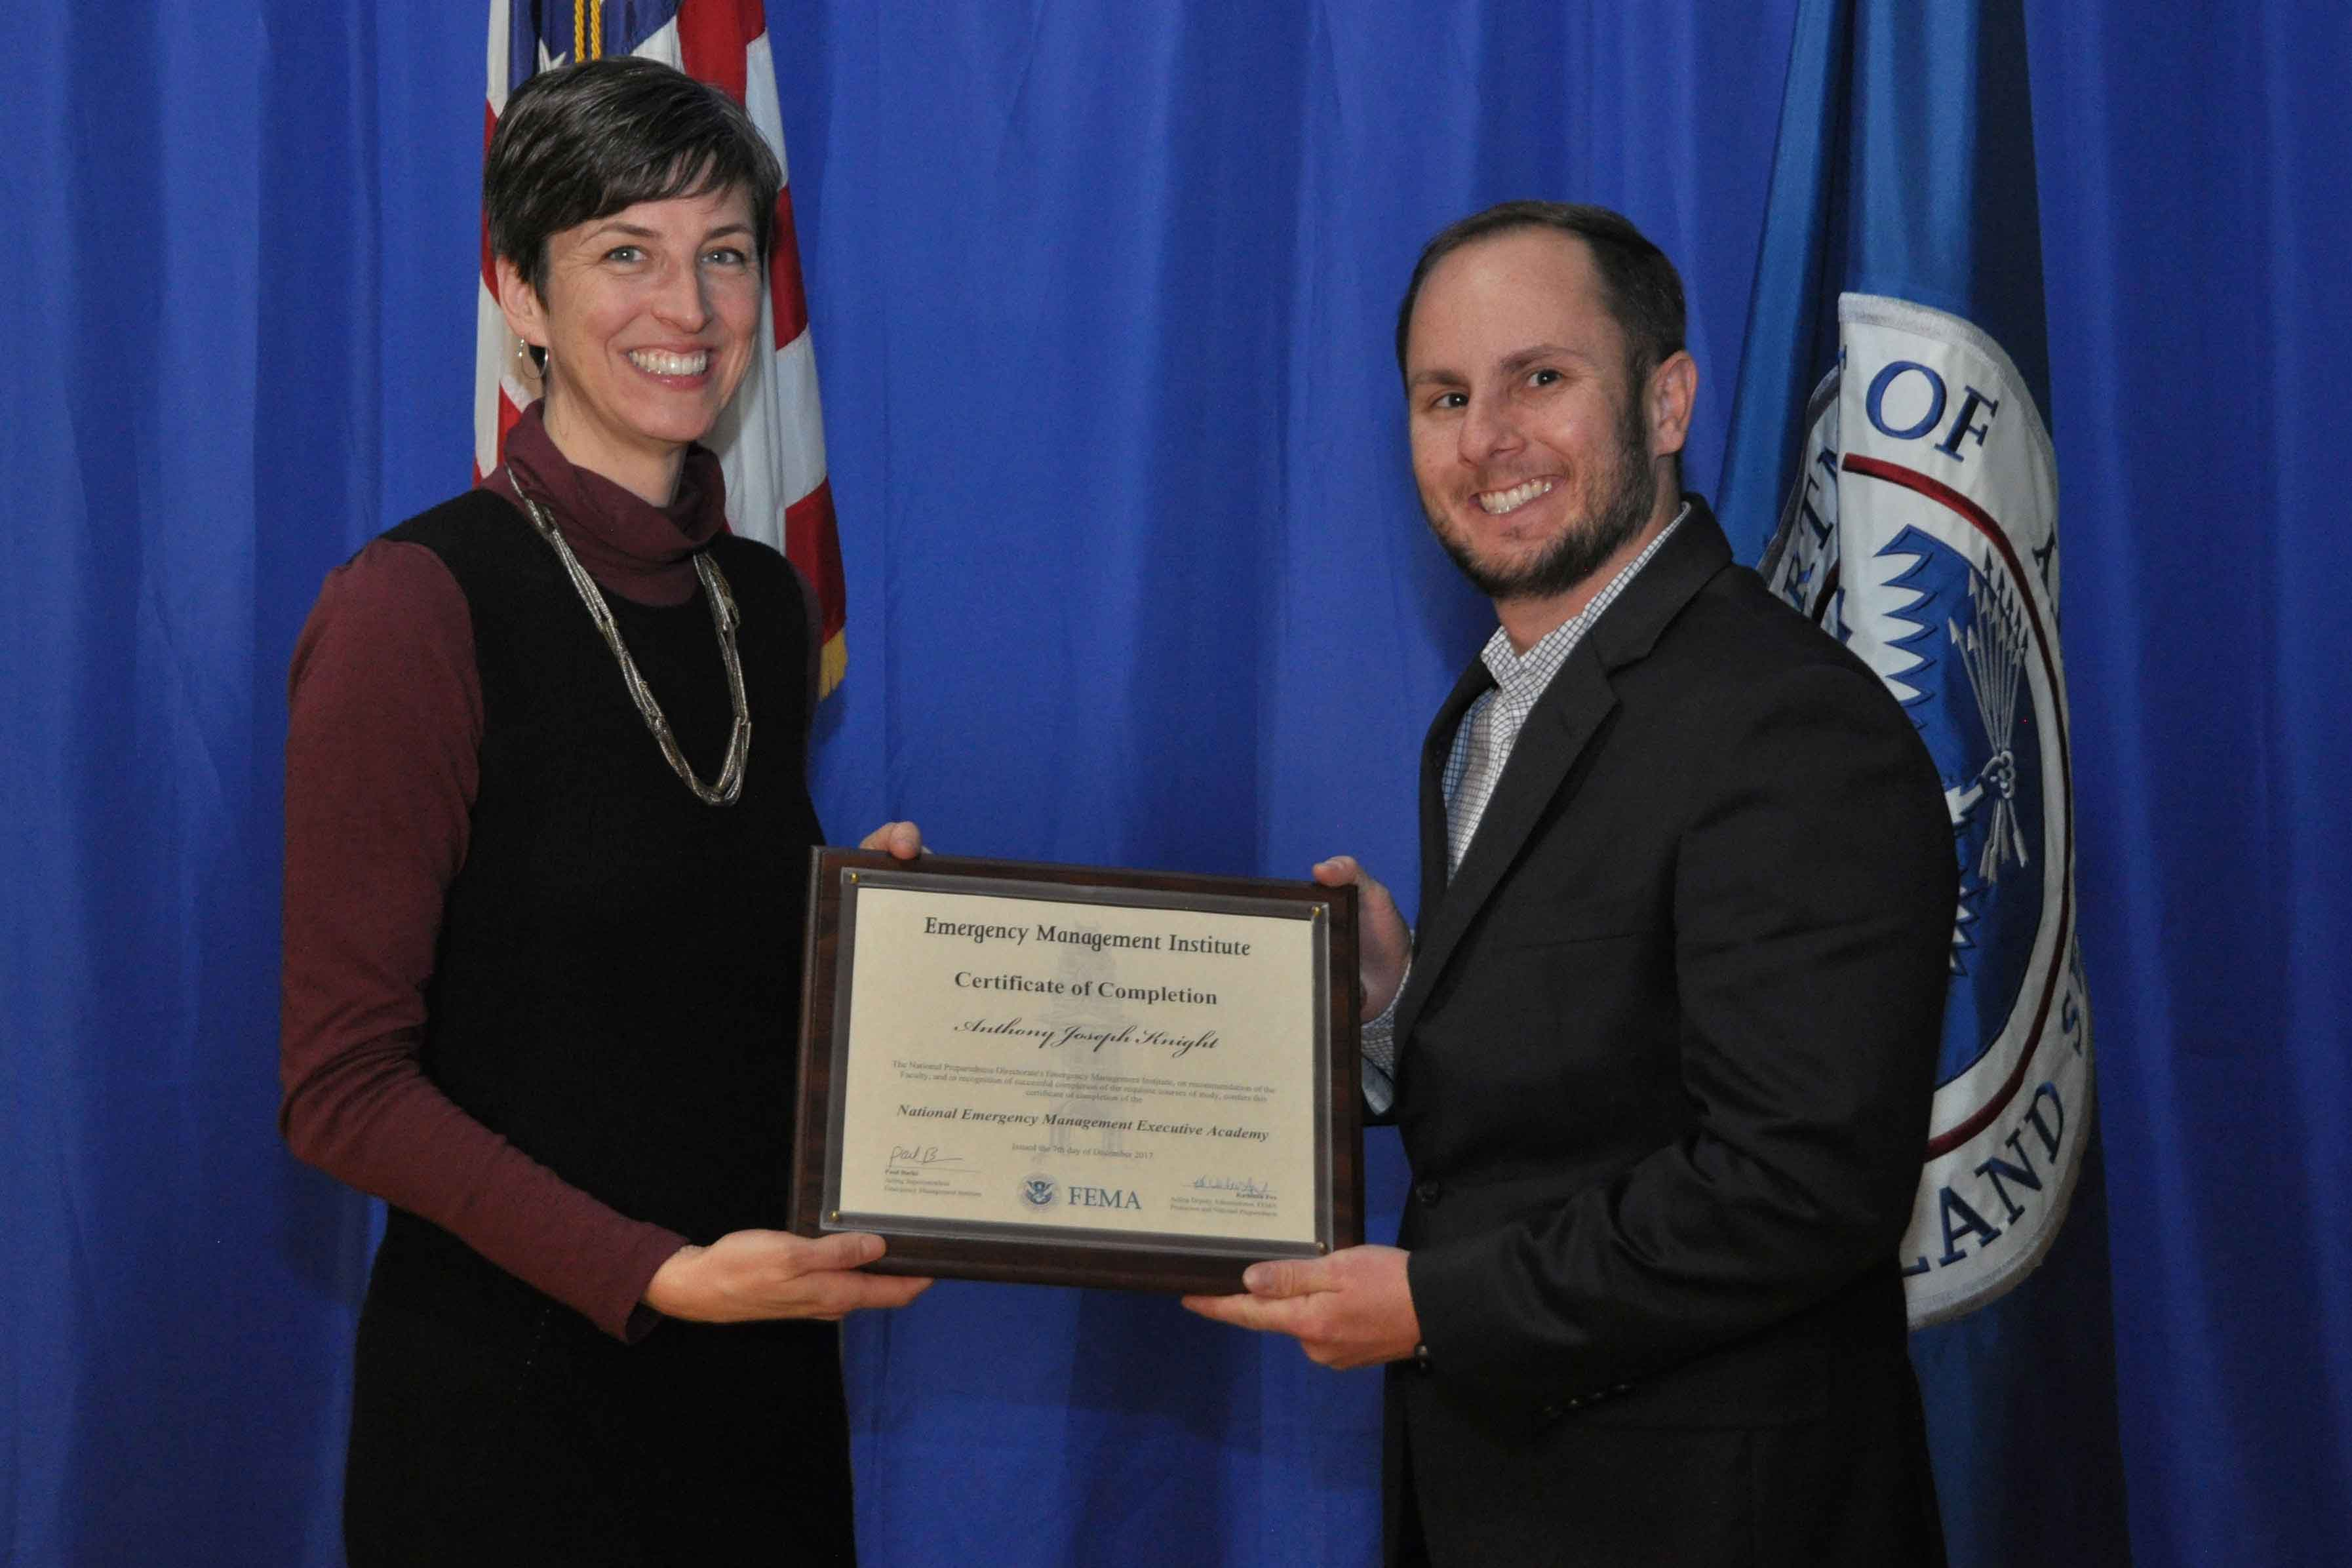 Anthony J. Knight, Cal Poly's director of emergency management, graduated Dec. 7 from FEMA's National Emergency Management Executive Academy. Katie Fox (left), FEMA acting deputy administrator, protection and national preparedness, congratulates Knight.